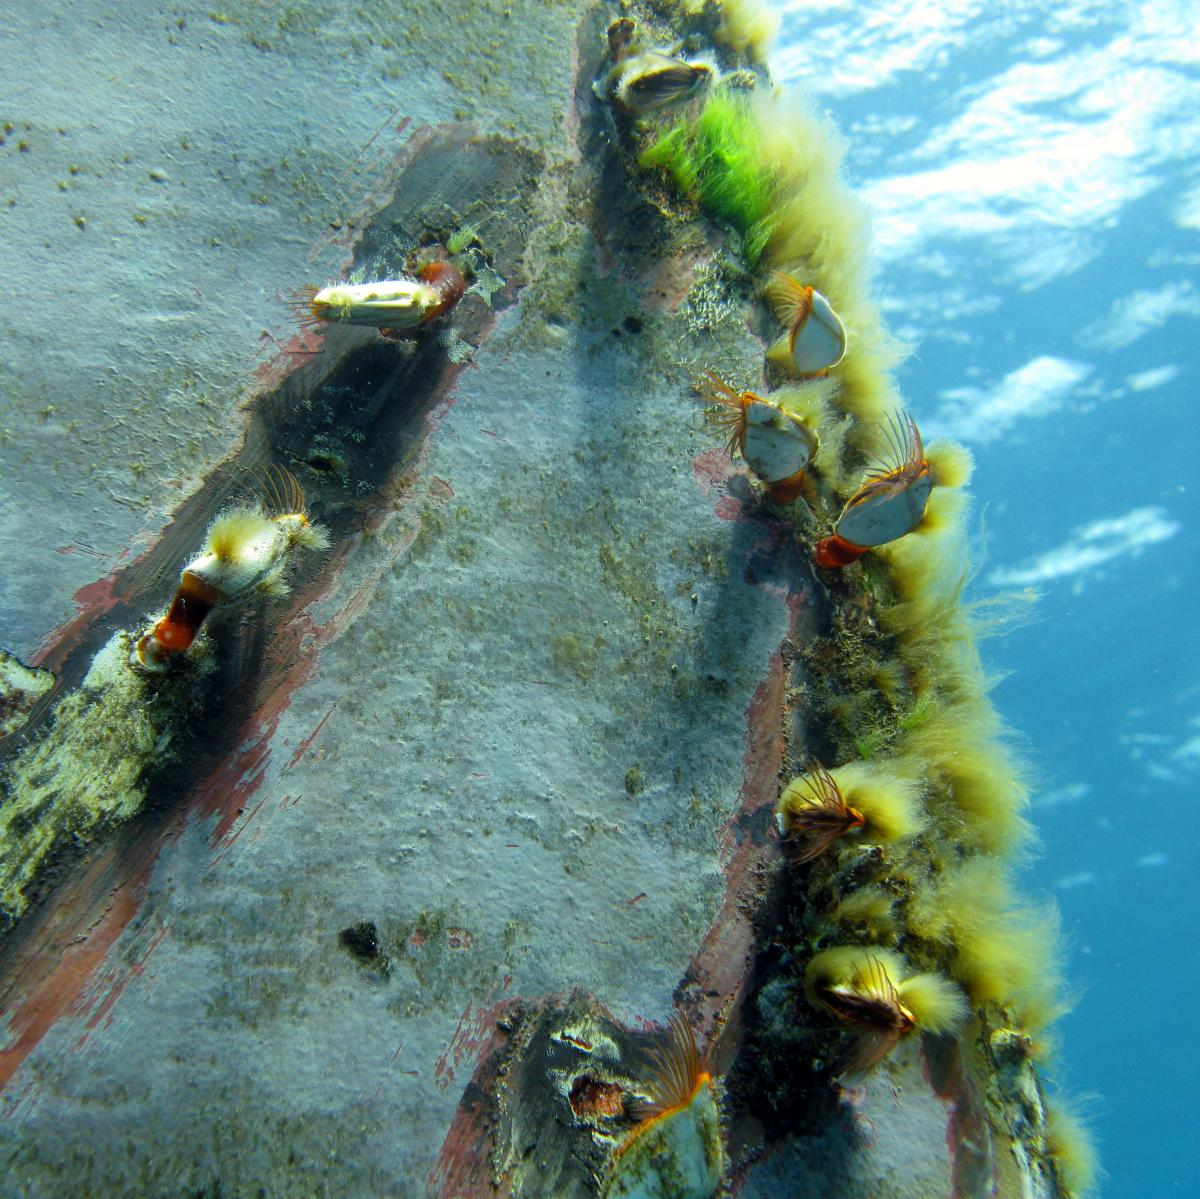 stalked barnacles on the bow of a ship